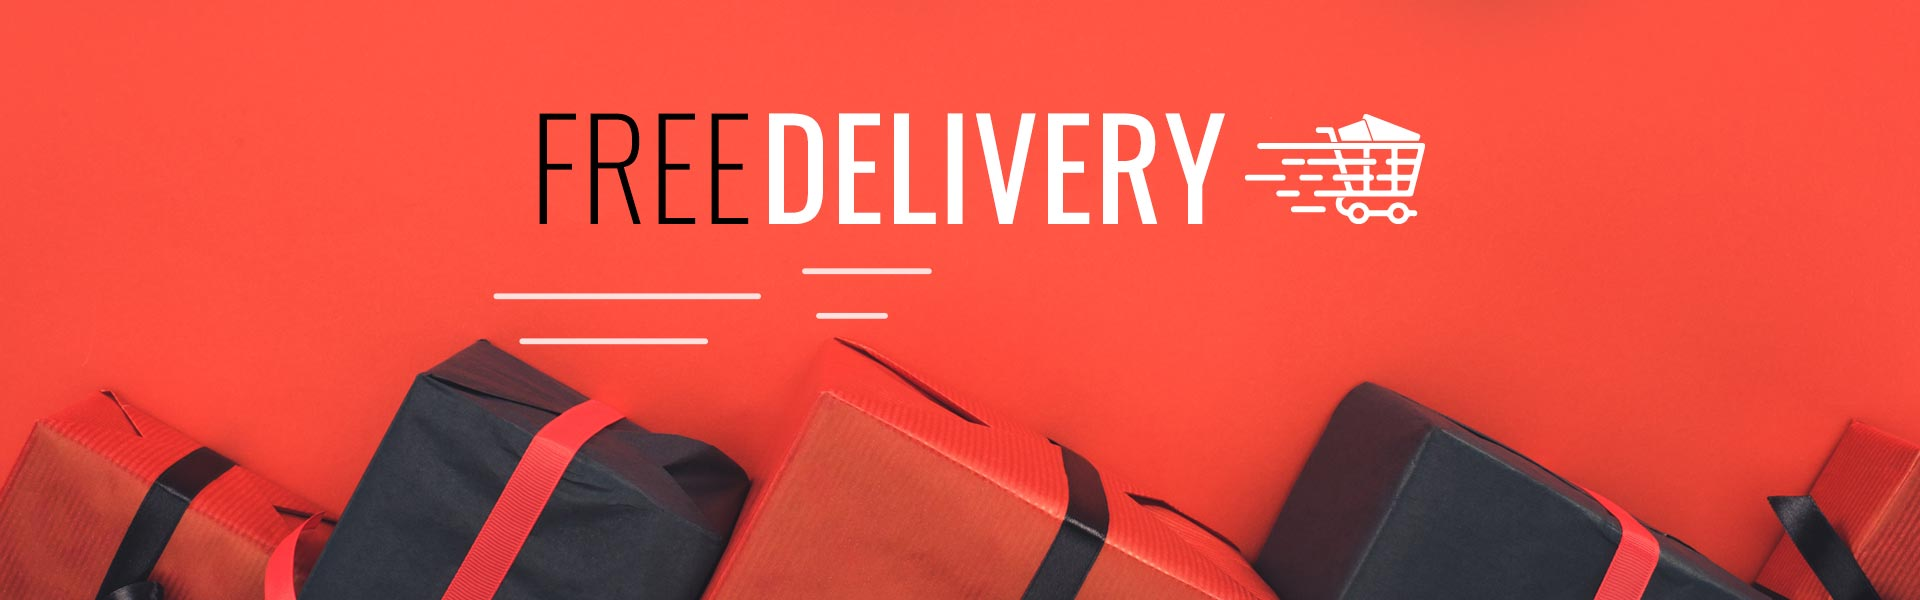 19-03-04-free-delivery---slider-us-4